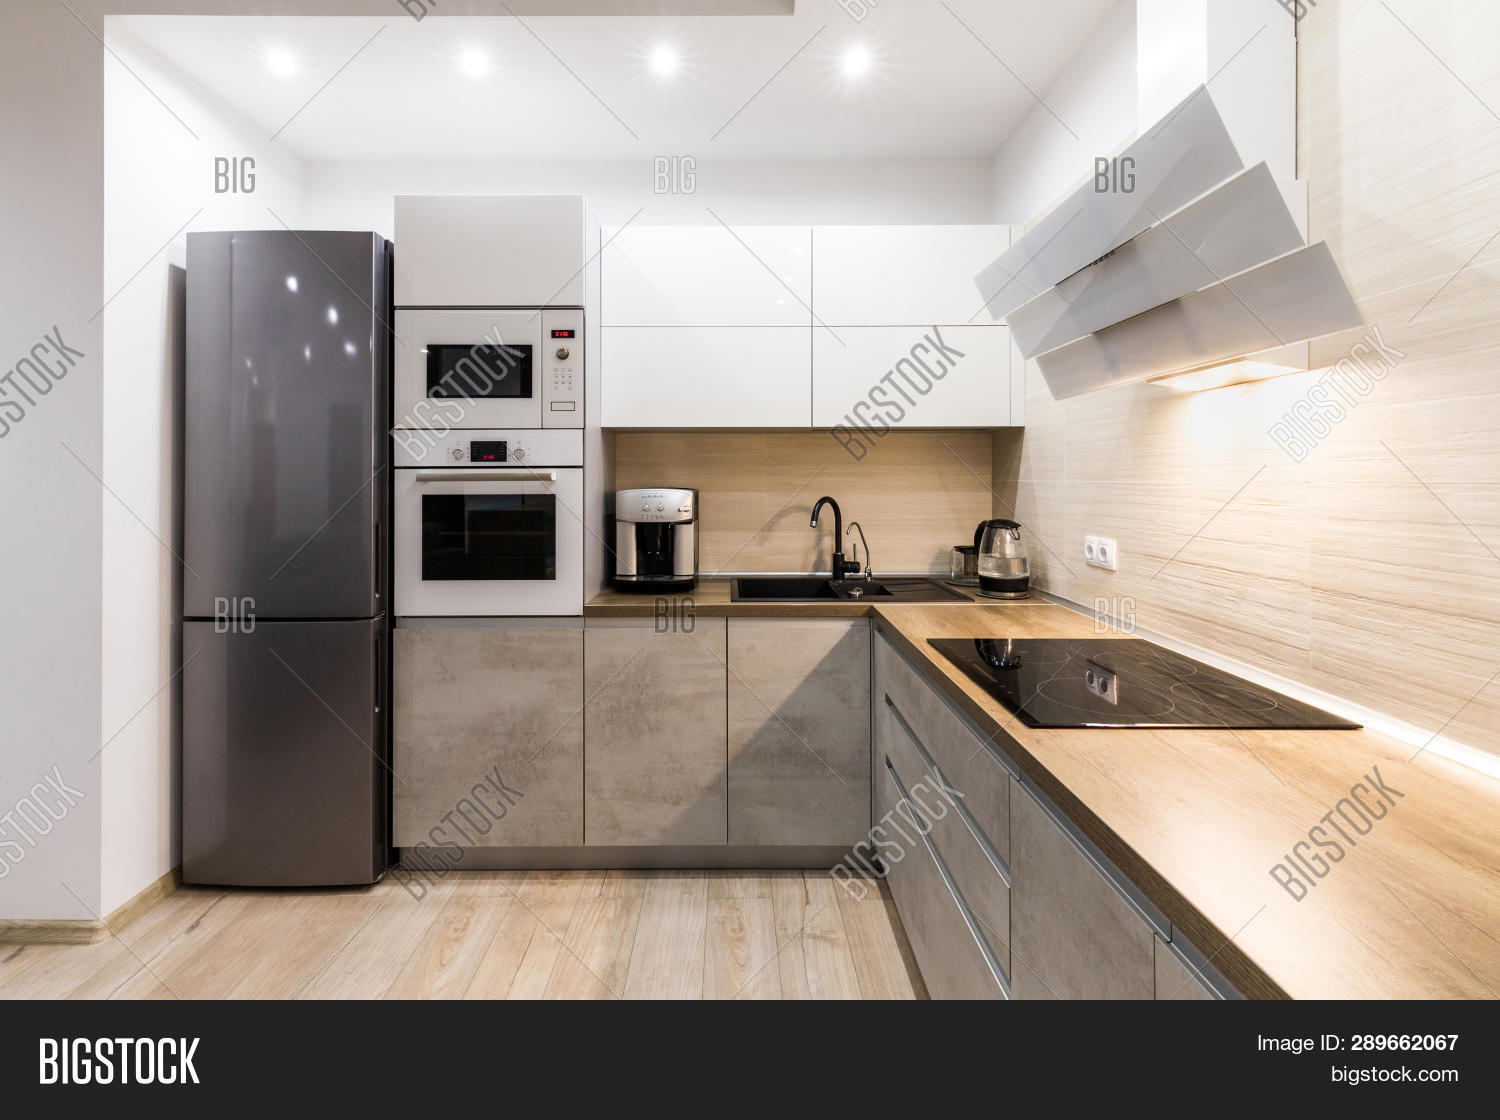 Small Cozy Kitchen Image & Photo (Free Trial) | Bigstock